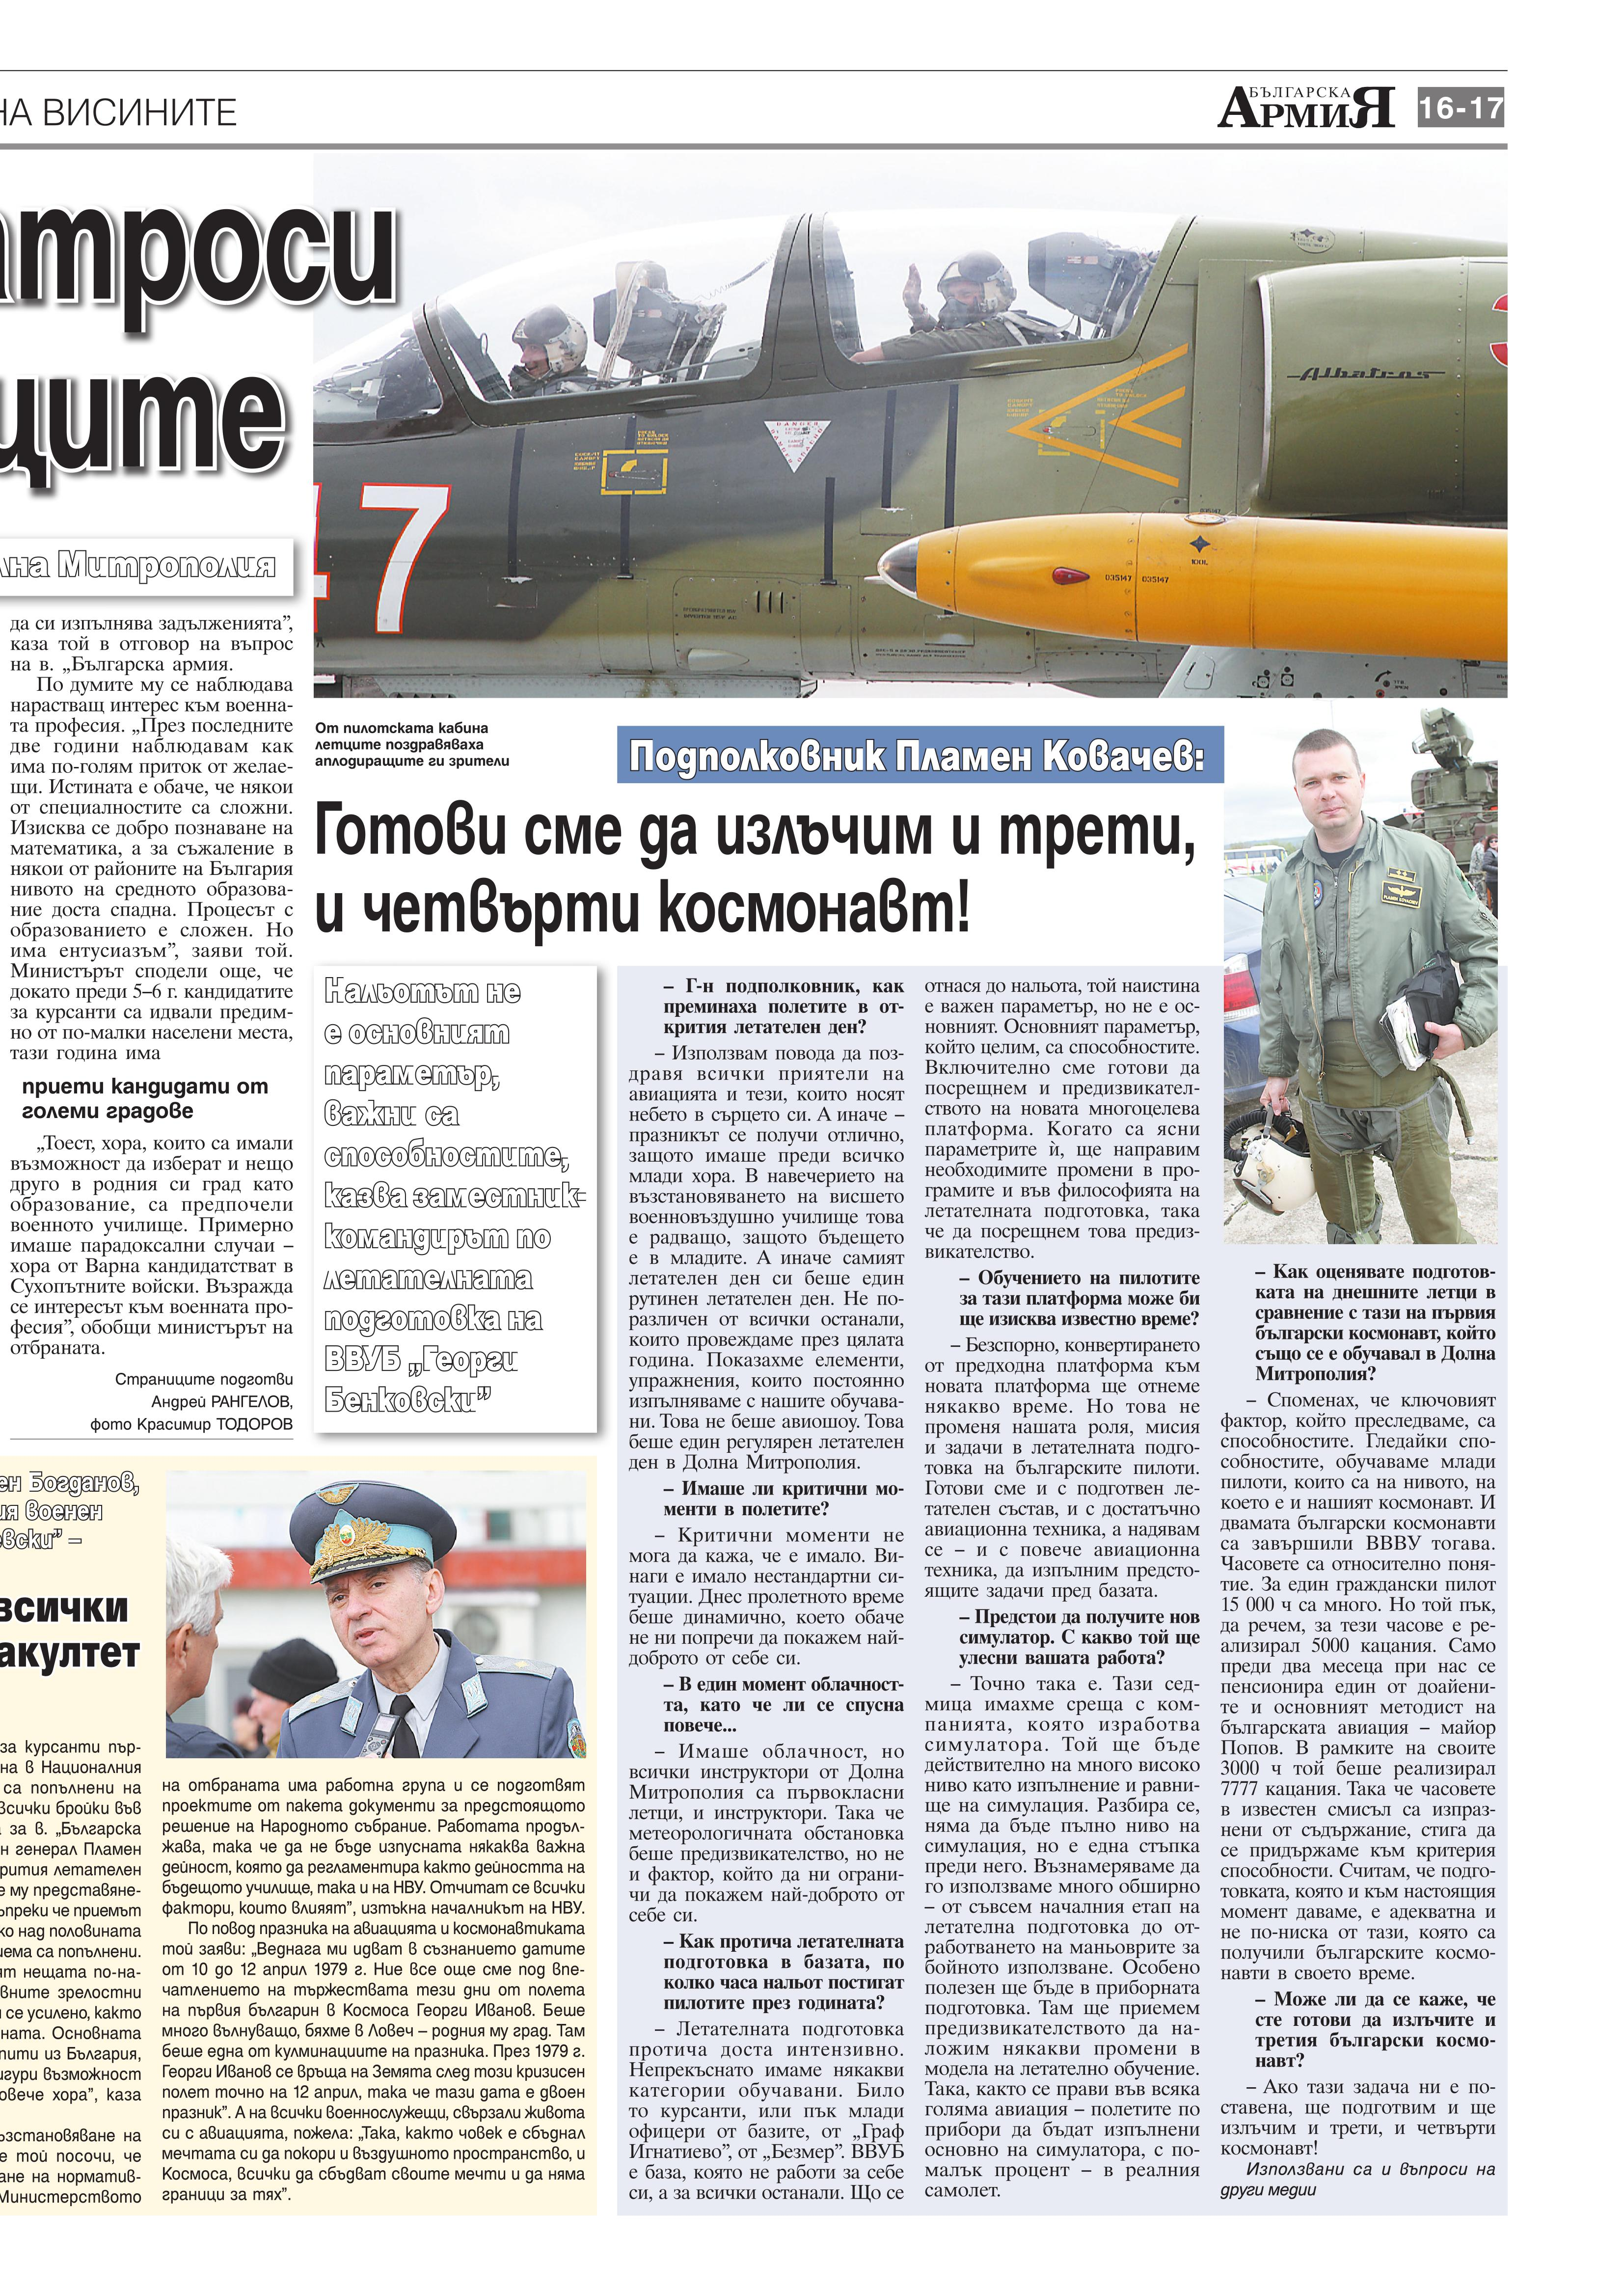 https://www.armymedia.bg/wp-content/uploads/2015/06/17.page1_-92.jpg